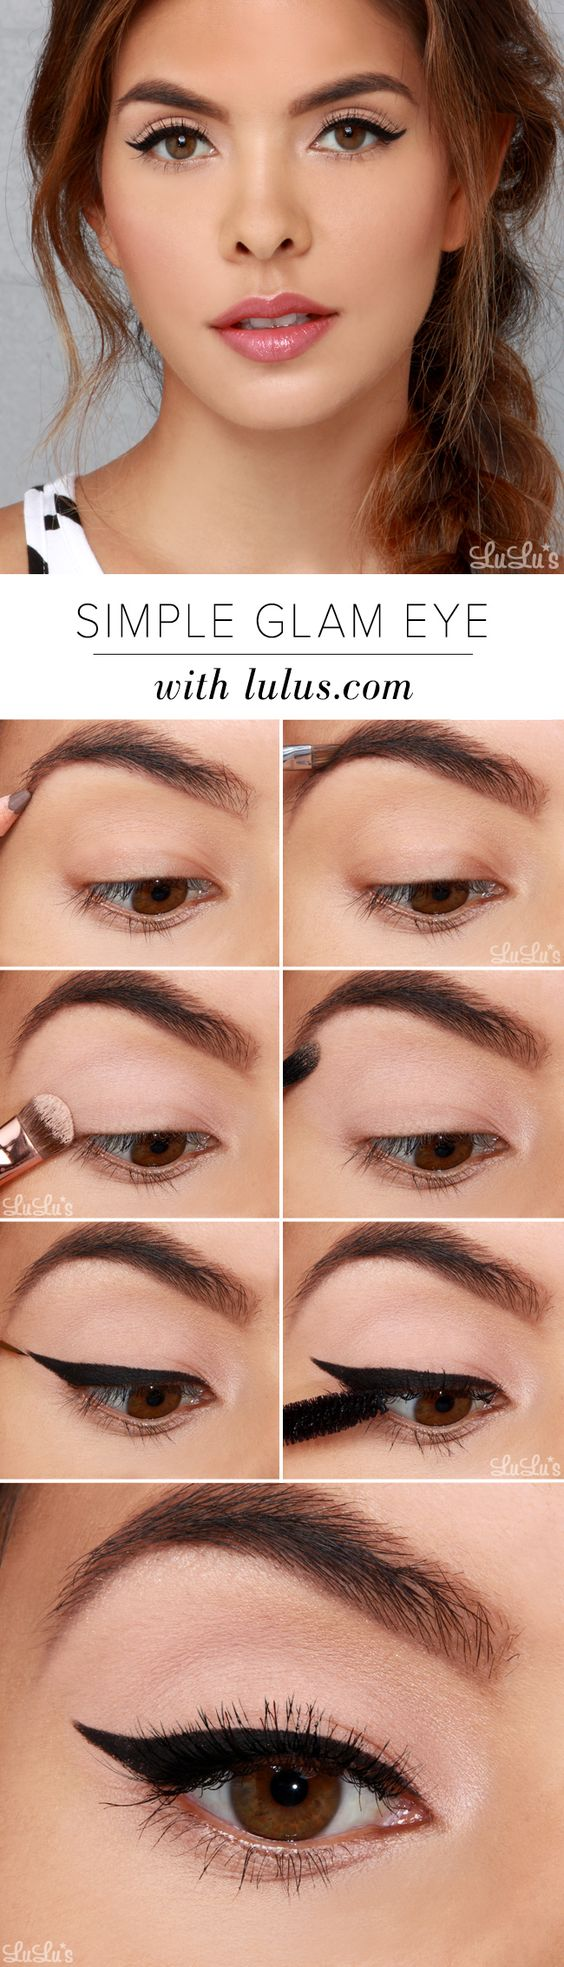 simple-glam-eye-makeup-for-brides via